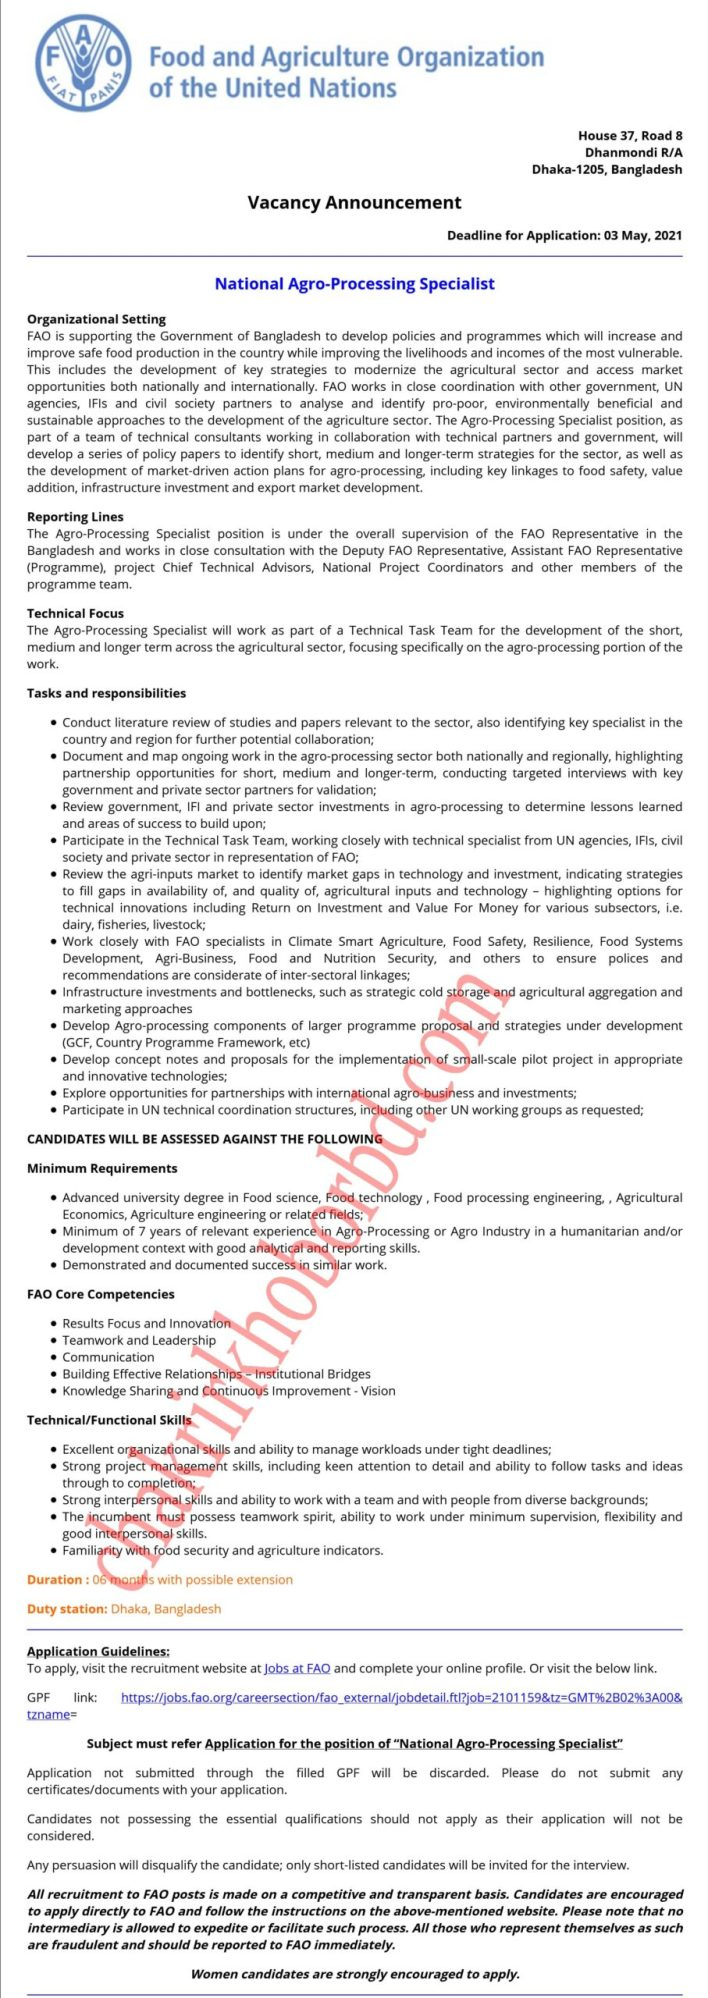 job at food and agriculture organization of the united nations